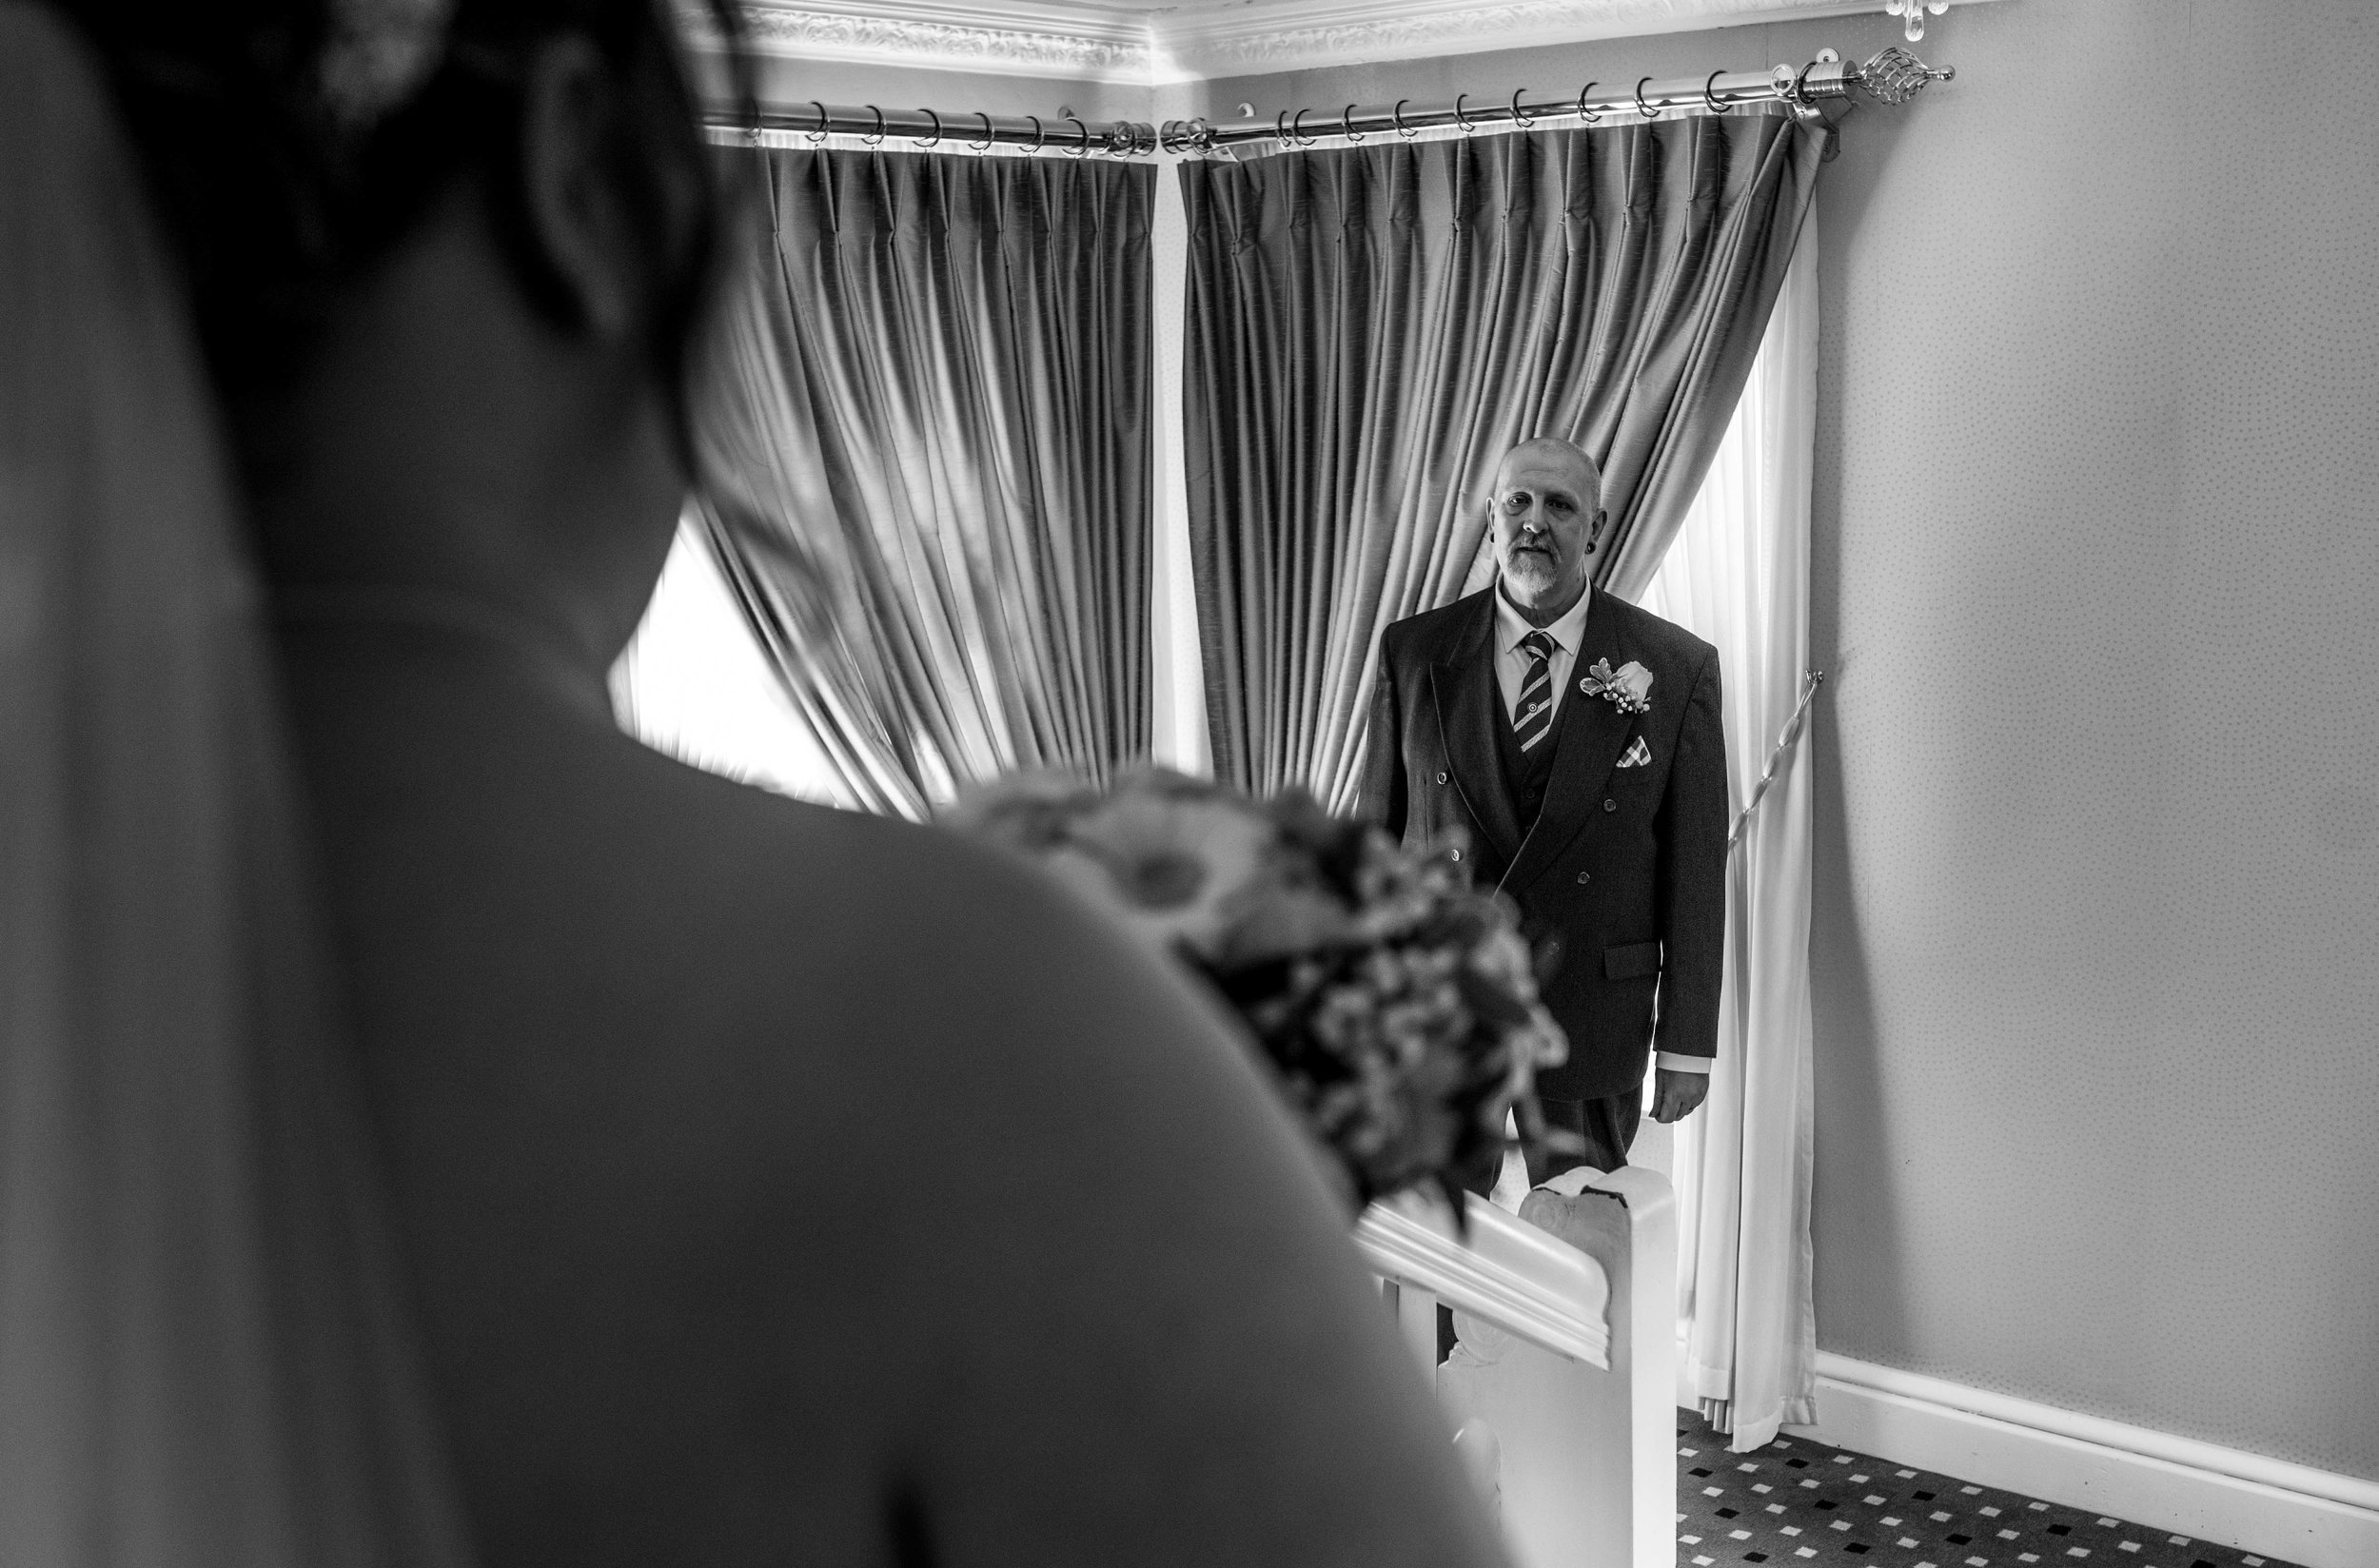 A view over the brides shoulder of the father of the bride seeing her for the first time.